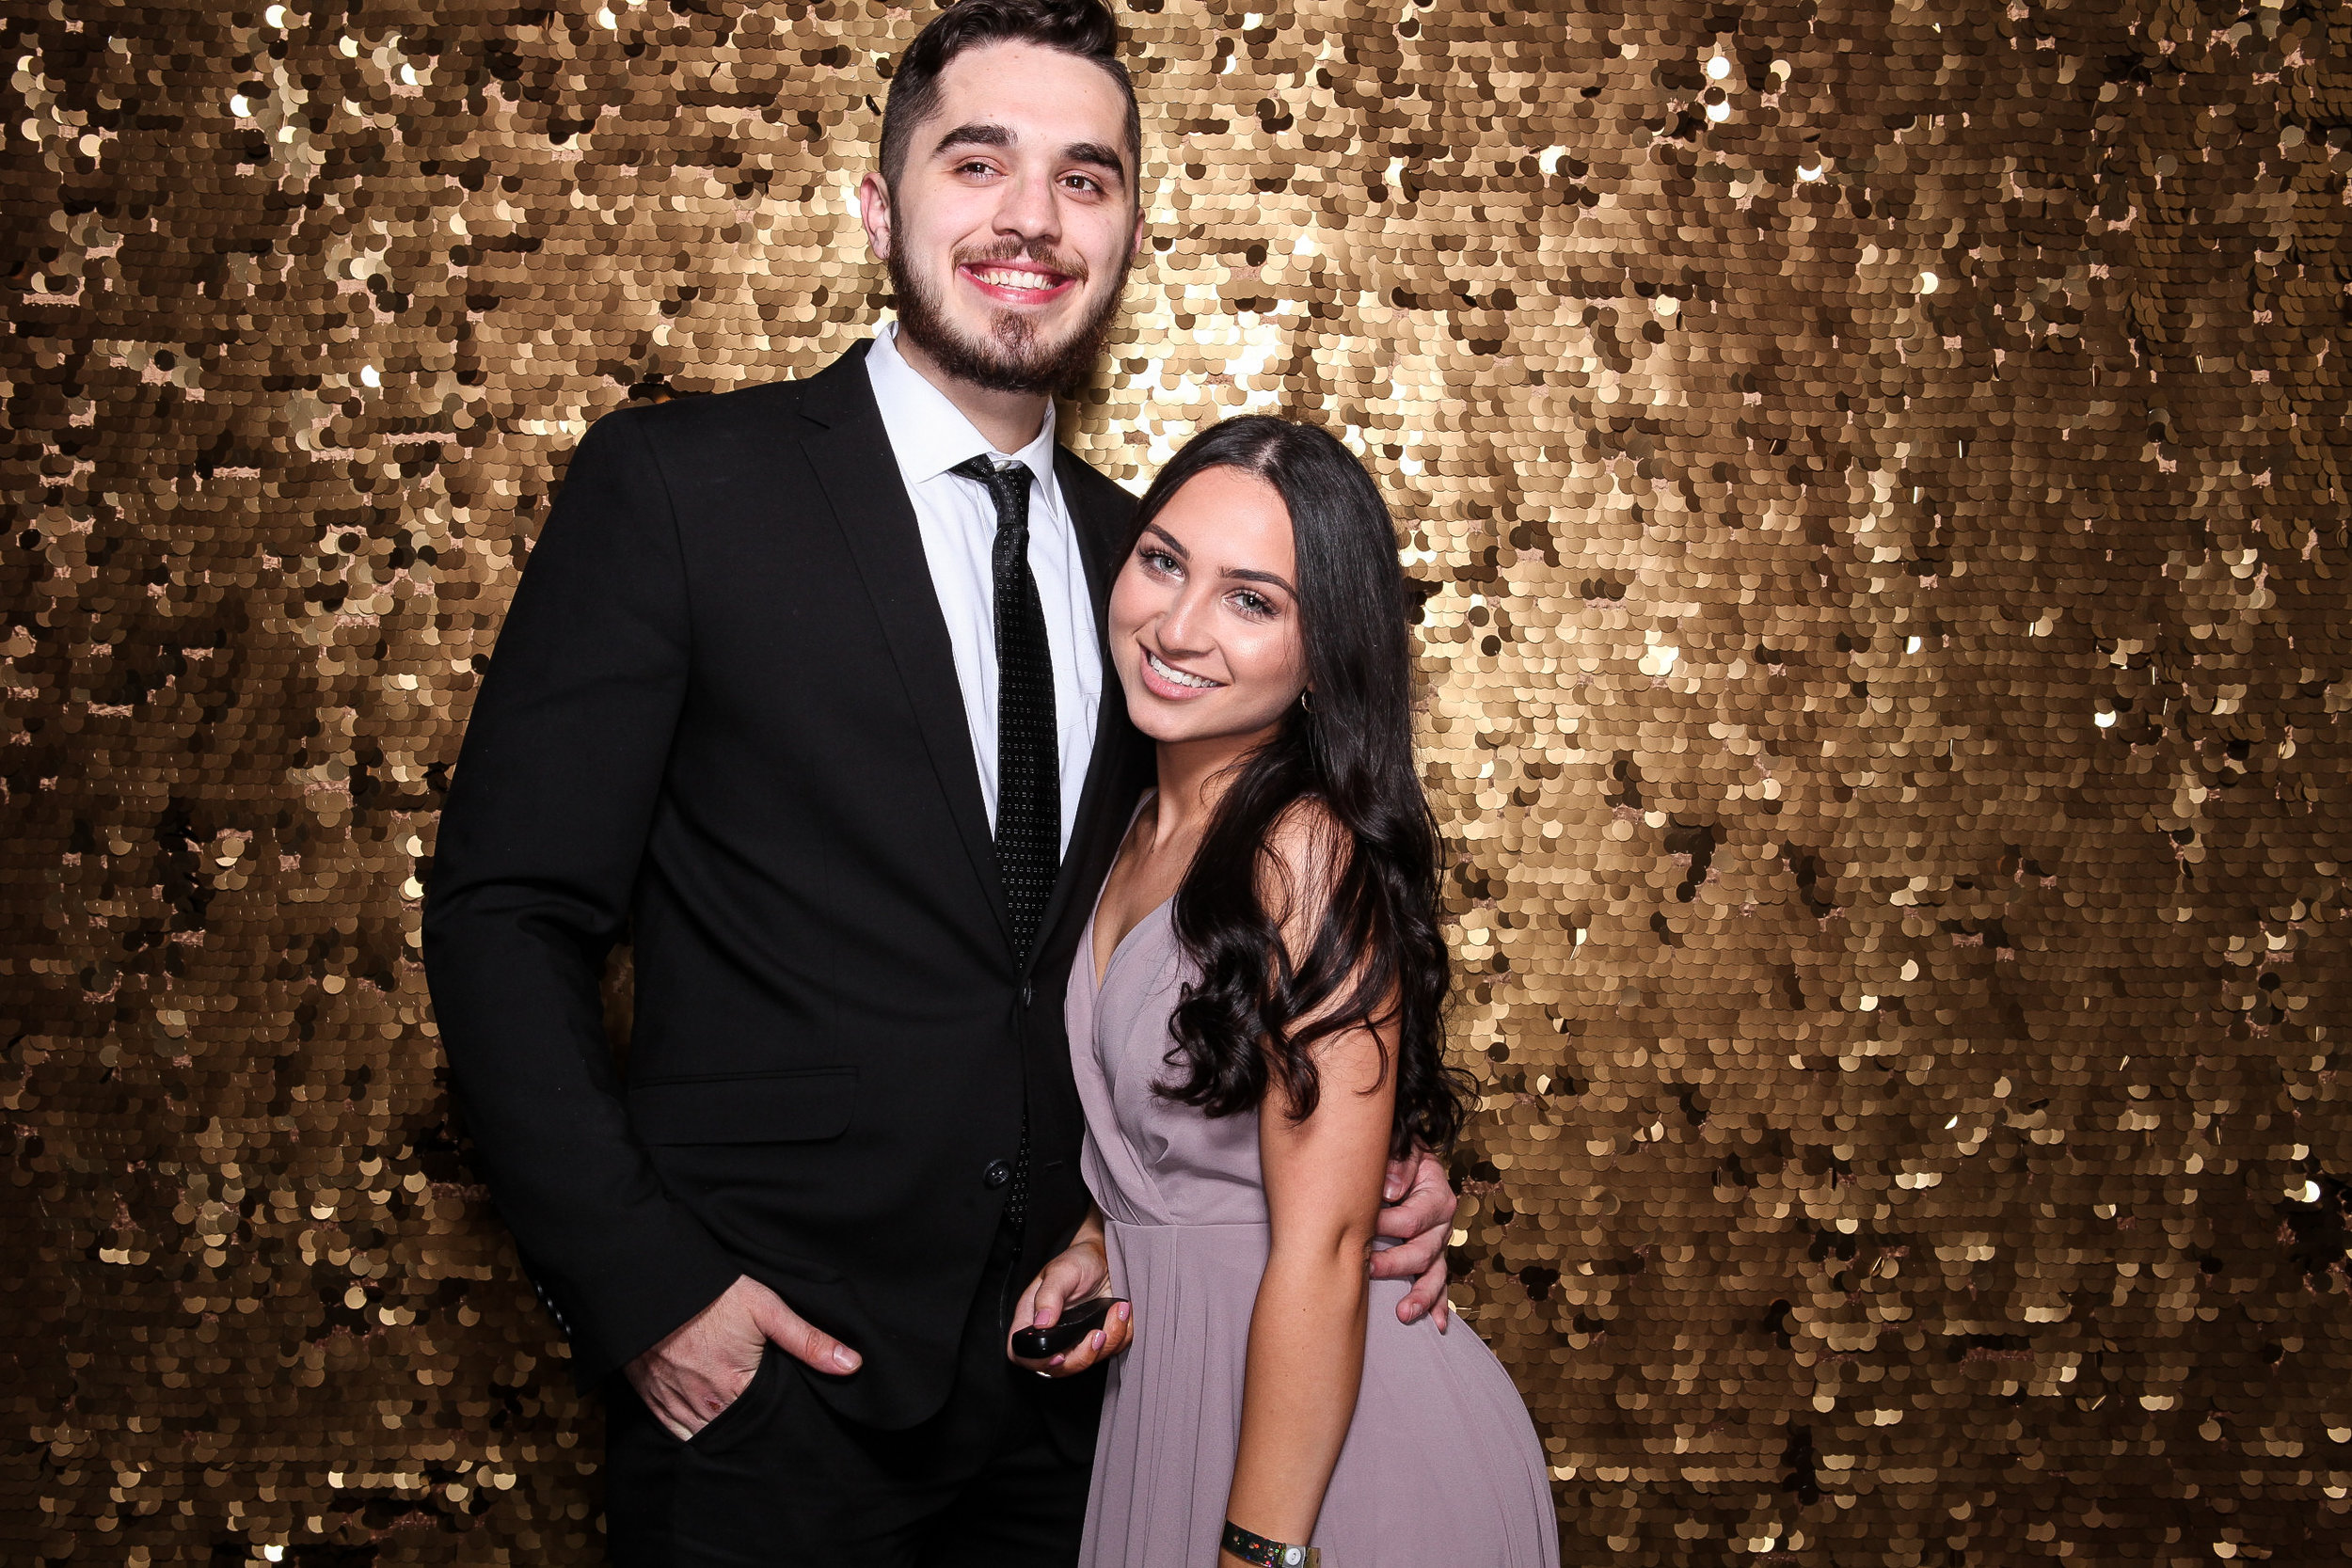 20190503_Adelphi_Senior_Formal-087.jpg